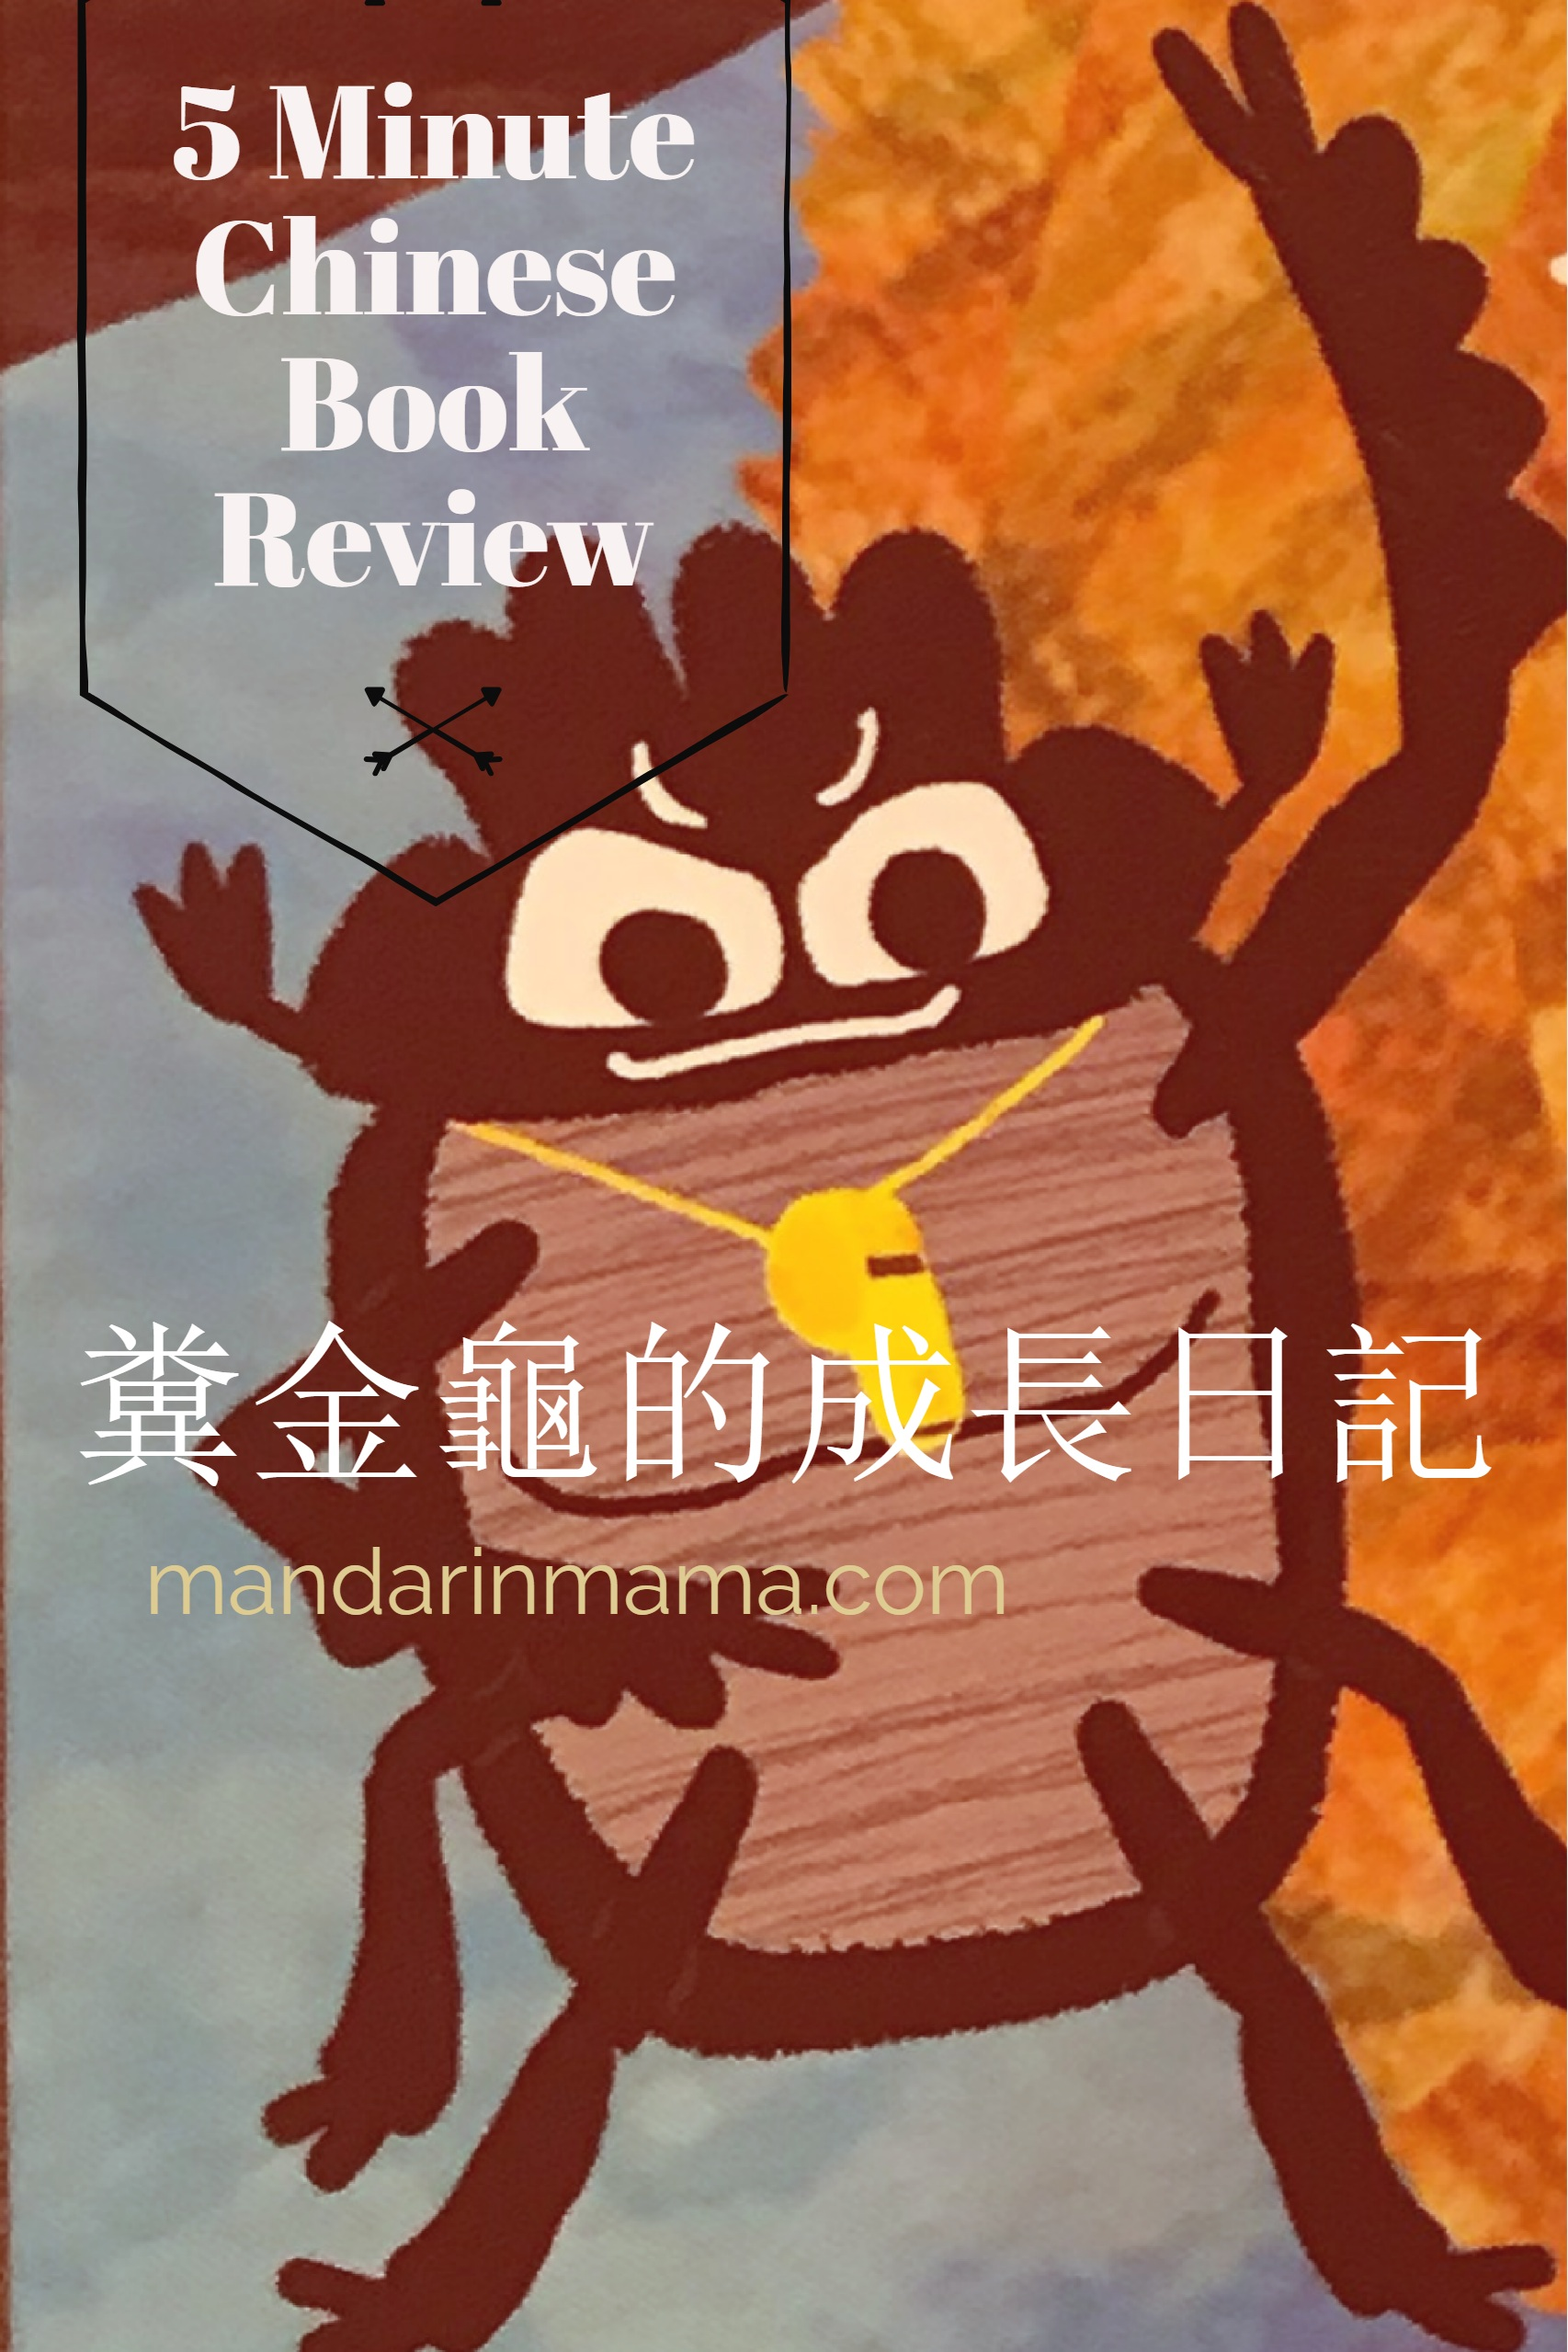 5 Minute Chinese Book Review of  a Chinese chapter book about a dung beetle academy. #chinesechapterbook, #teachkidschinese,